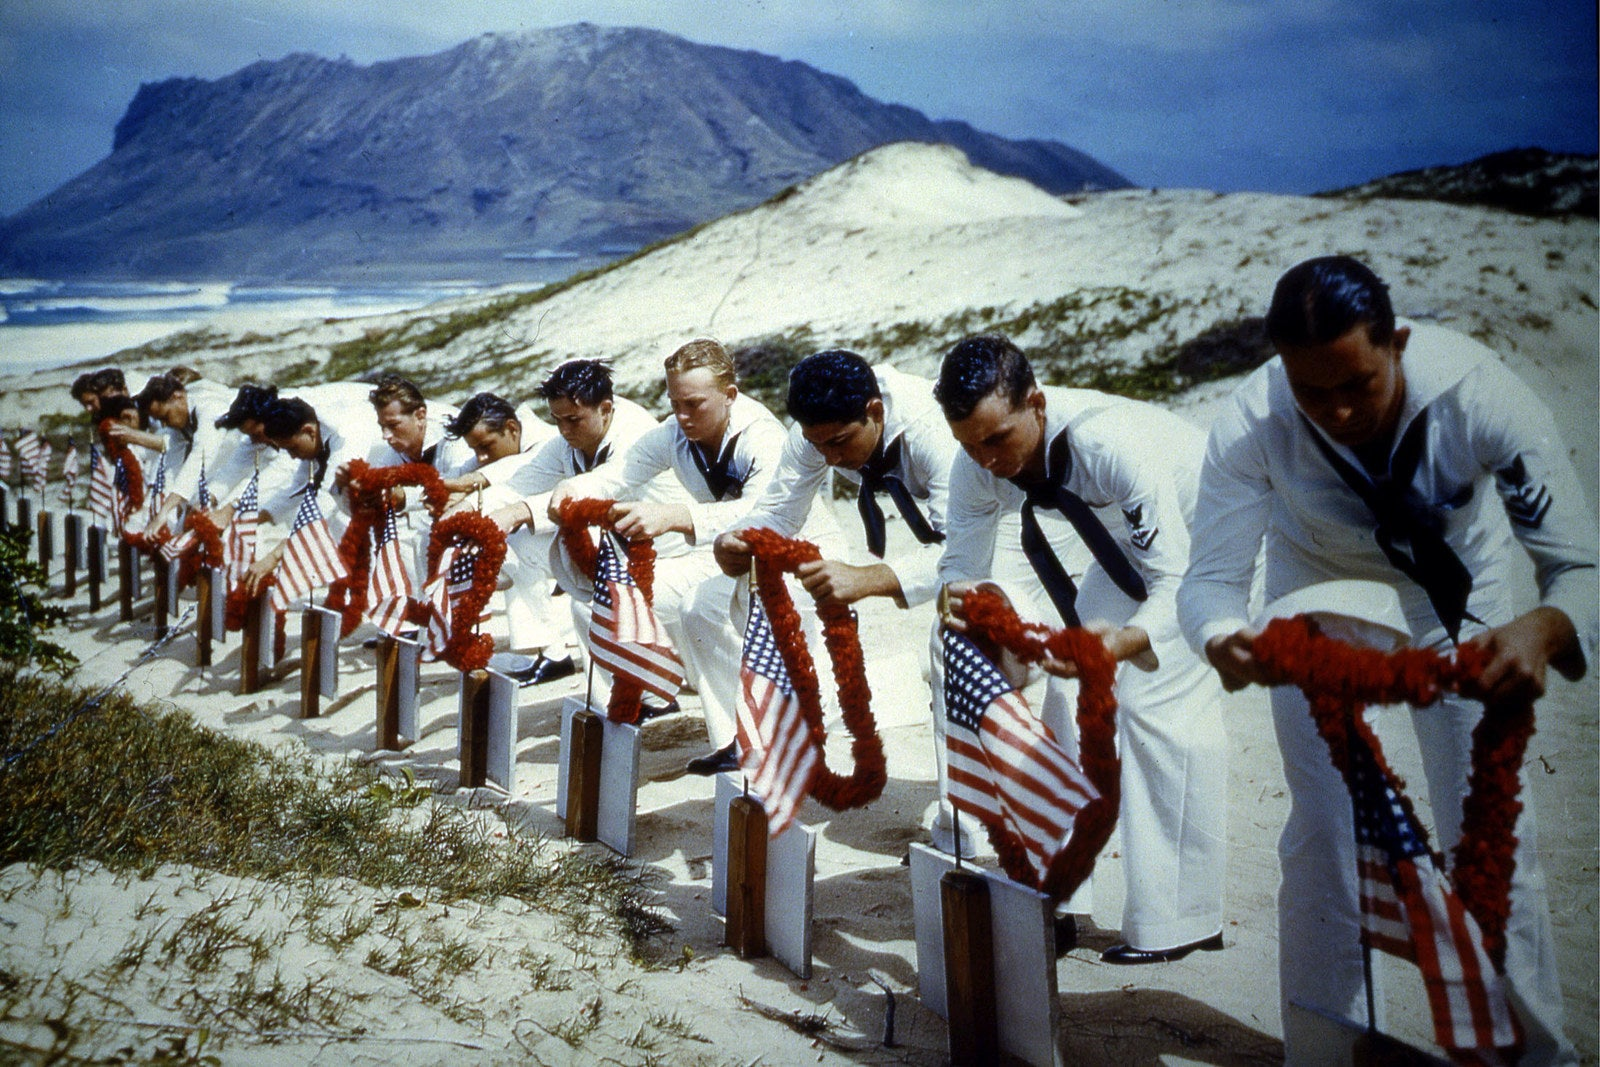 American sailors in Hawaii place leis over the graves of those who died in the attacks on Pearl Harbor during spring 1942.